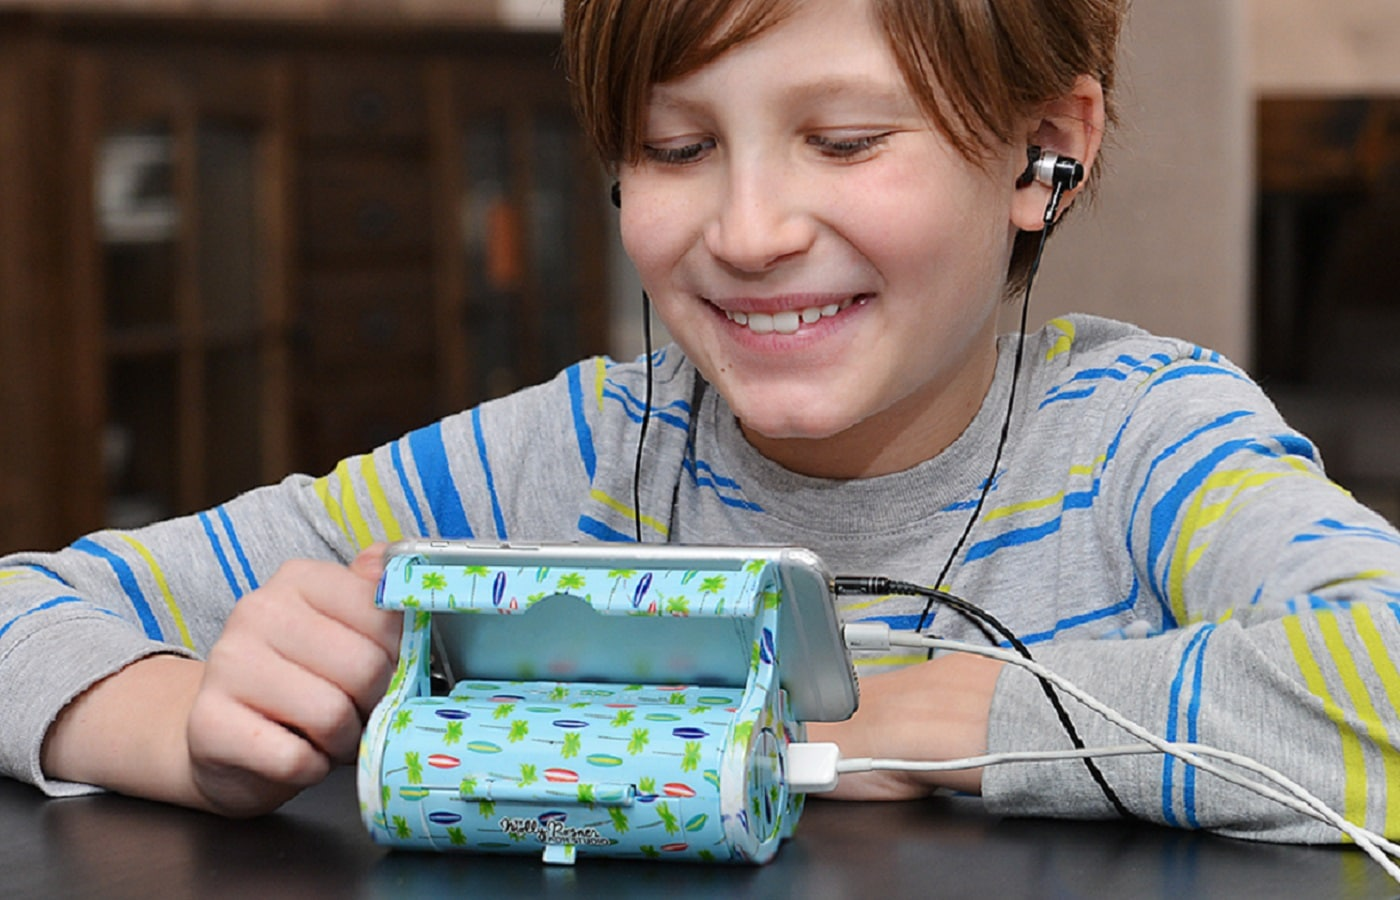 icaddy phone stand and charger being used by kid